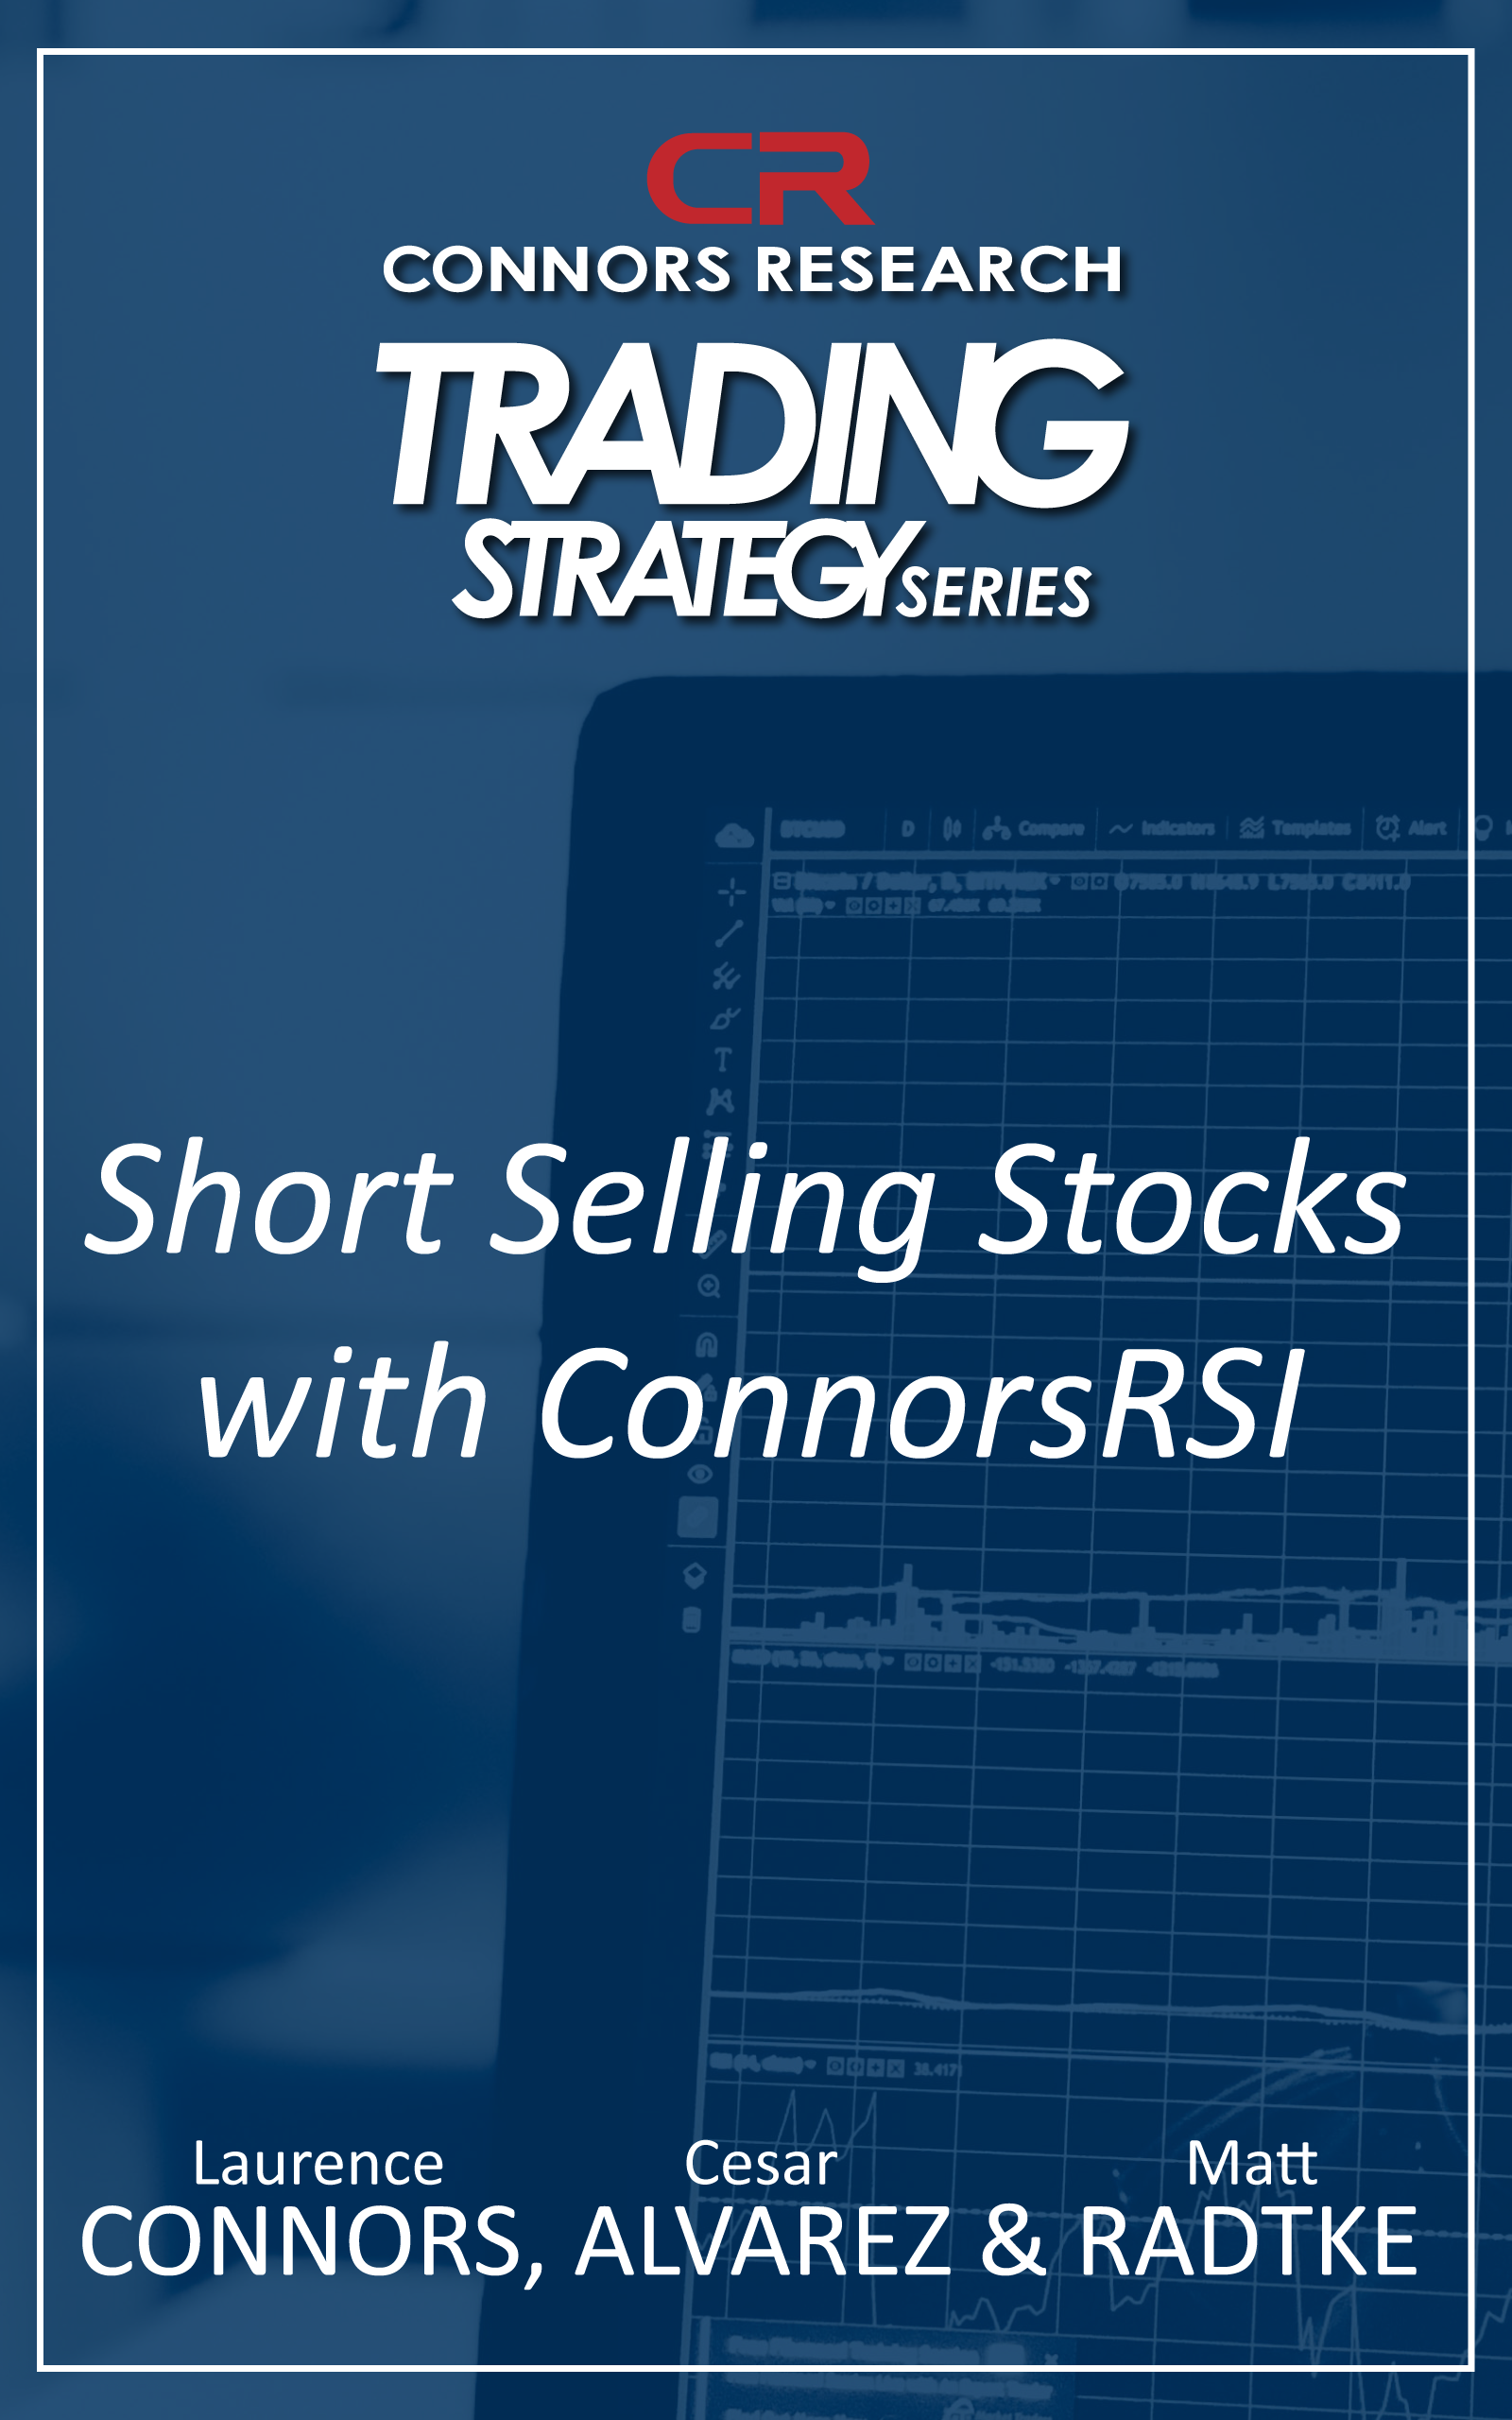 Connors Research Trading Strategy Series: Short Selling Stocks with ConnorsRSI BOO-CRSS-D